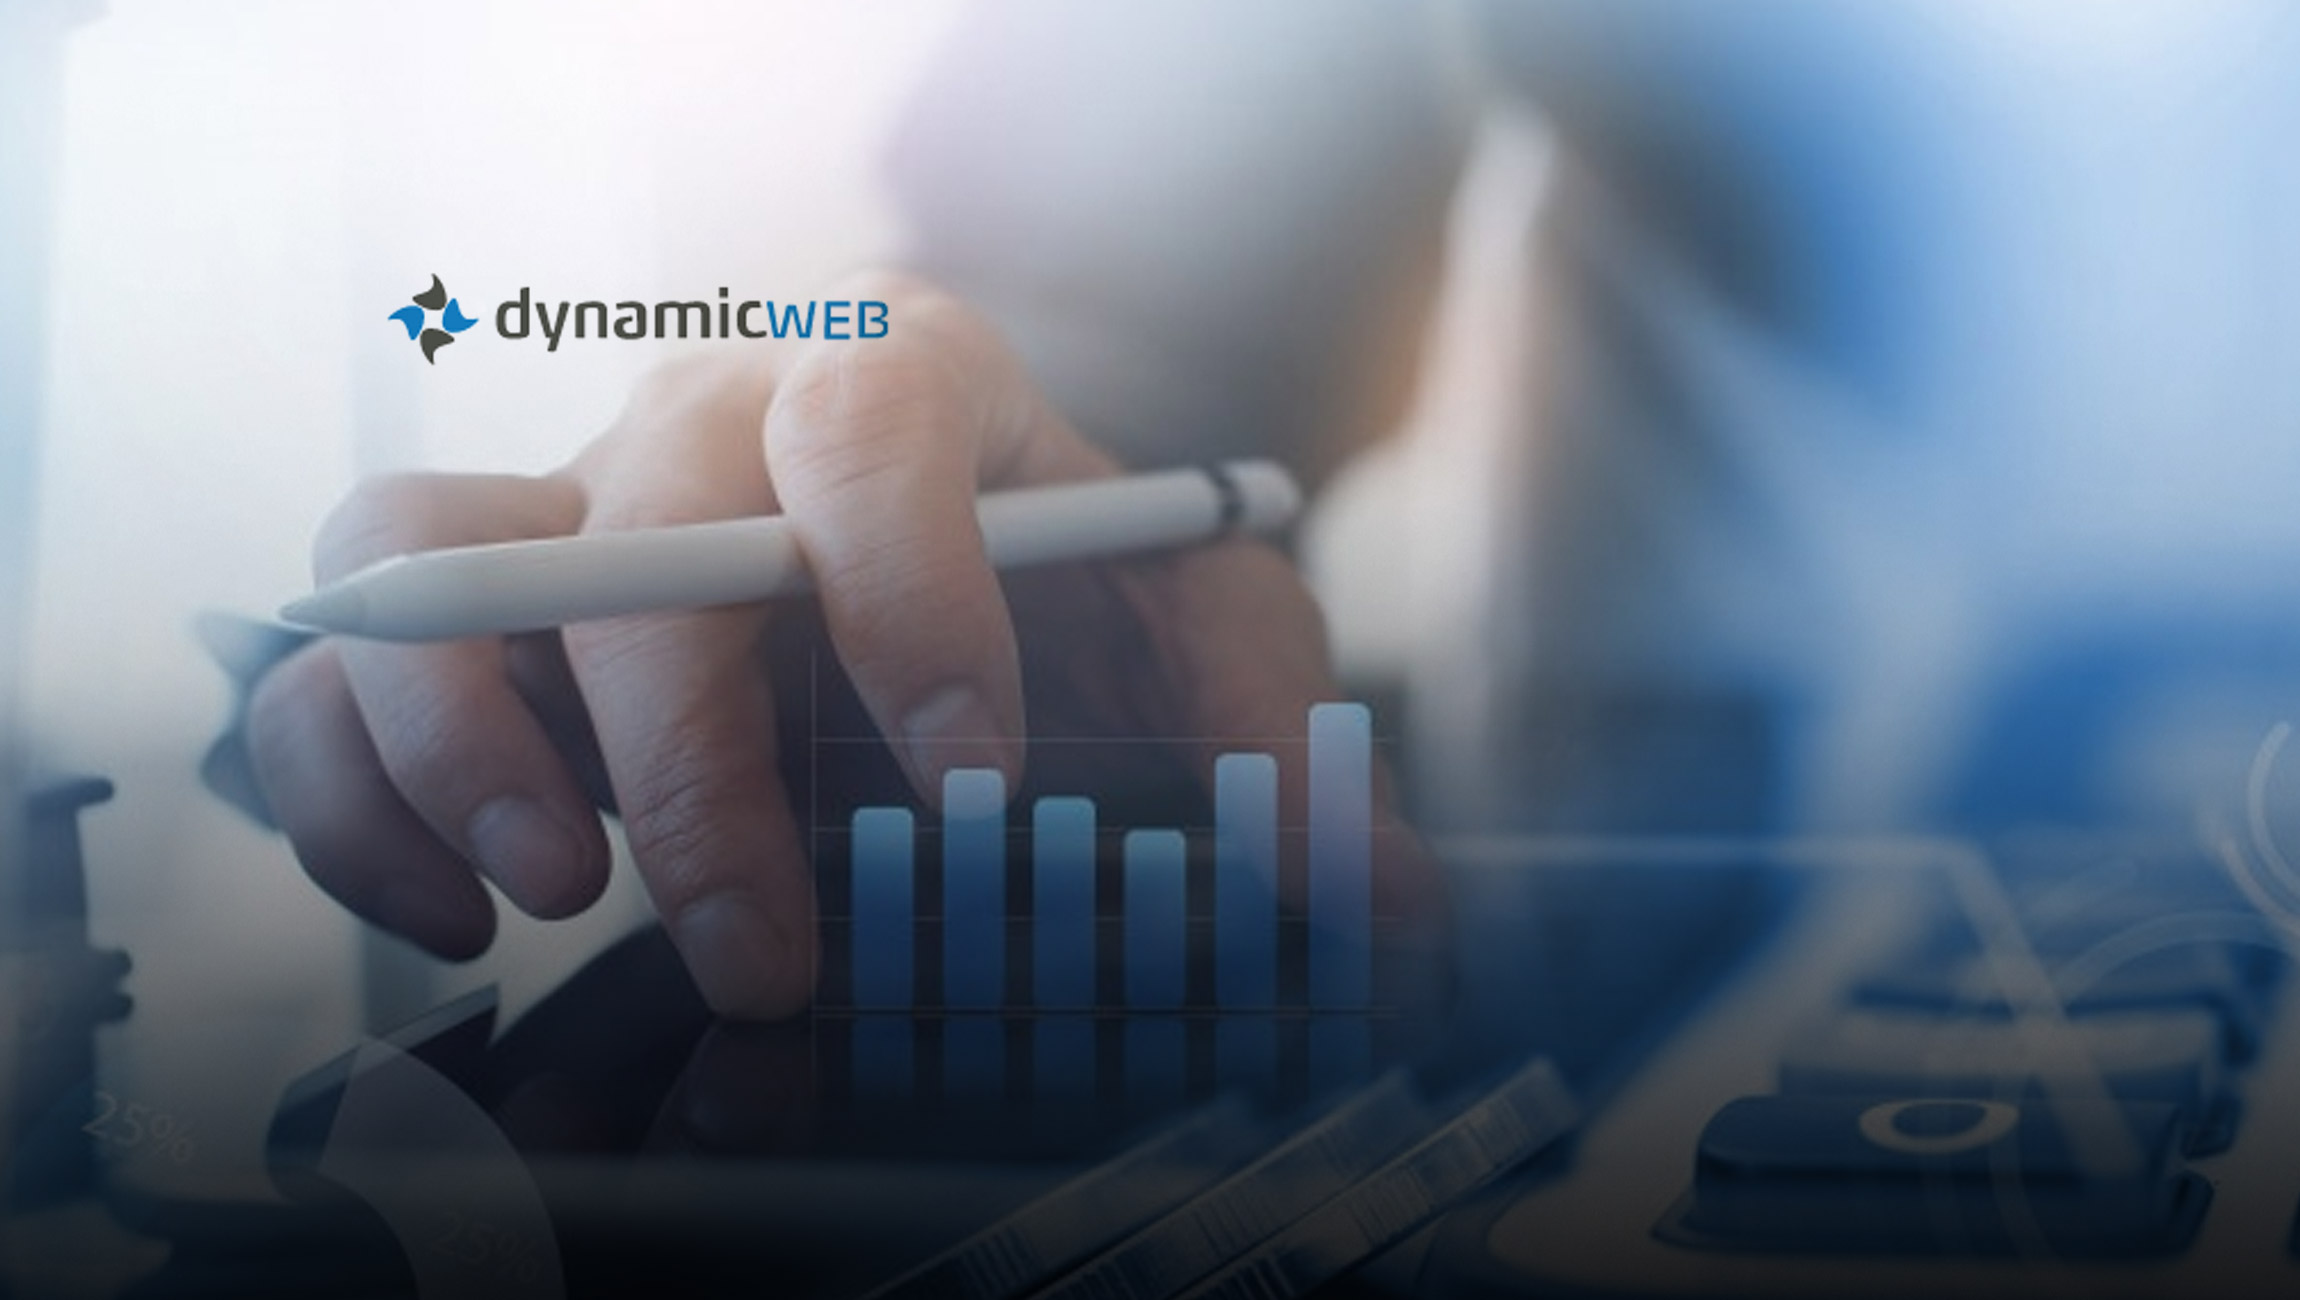 Dynamicweb Closes Another Record Year With Rapid Growth